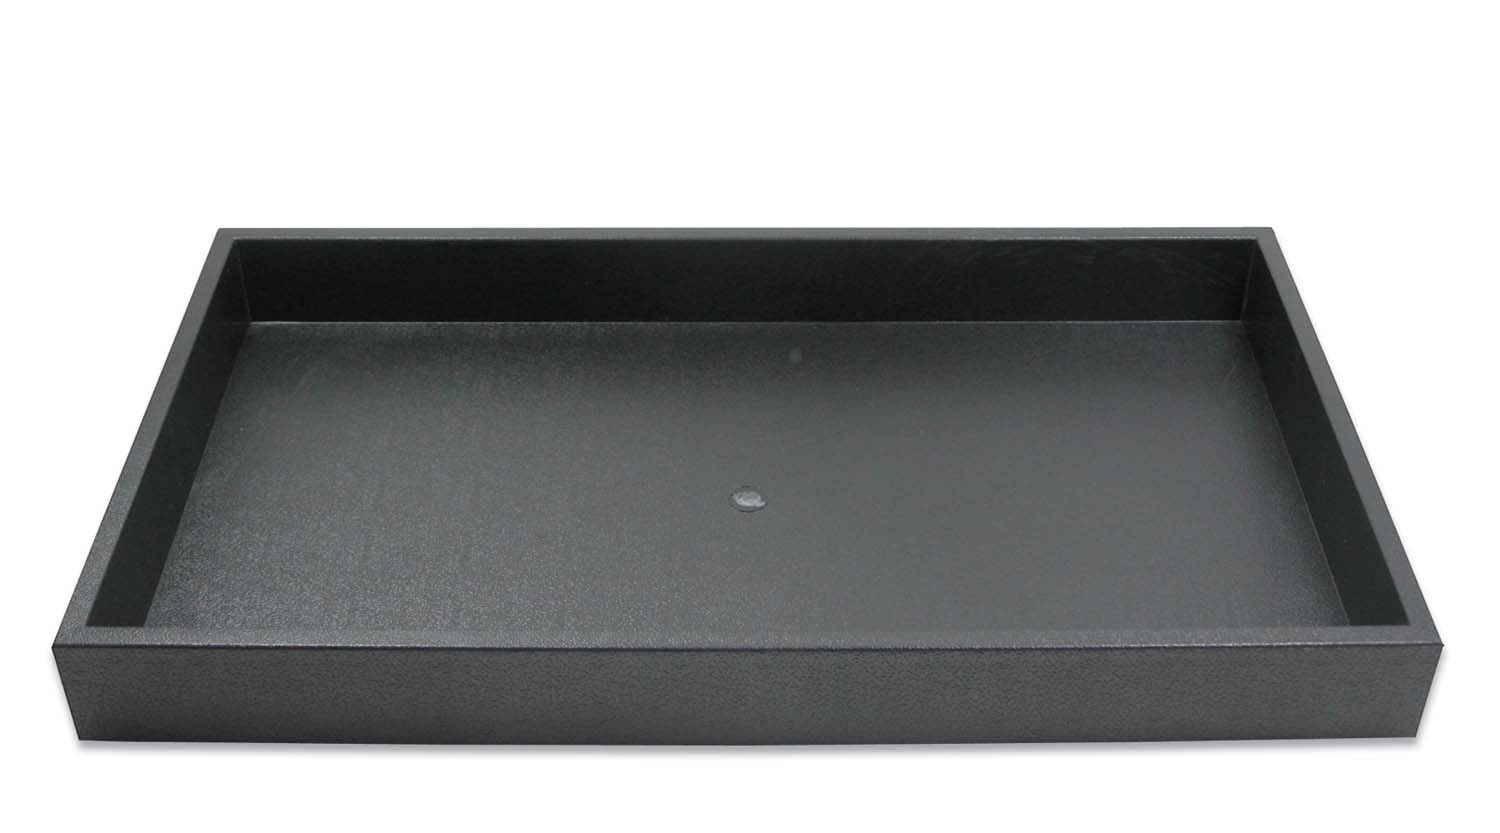 Gentil 1 ½ Inch Tall Standard Size Stackable Black Plastic Jewelry Utility Tray